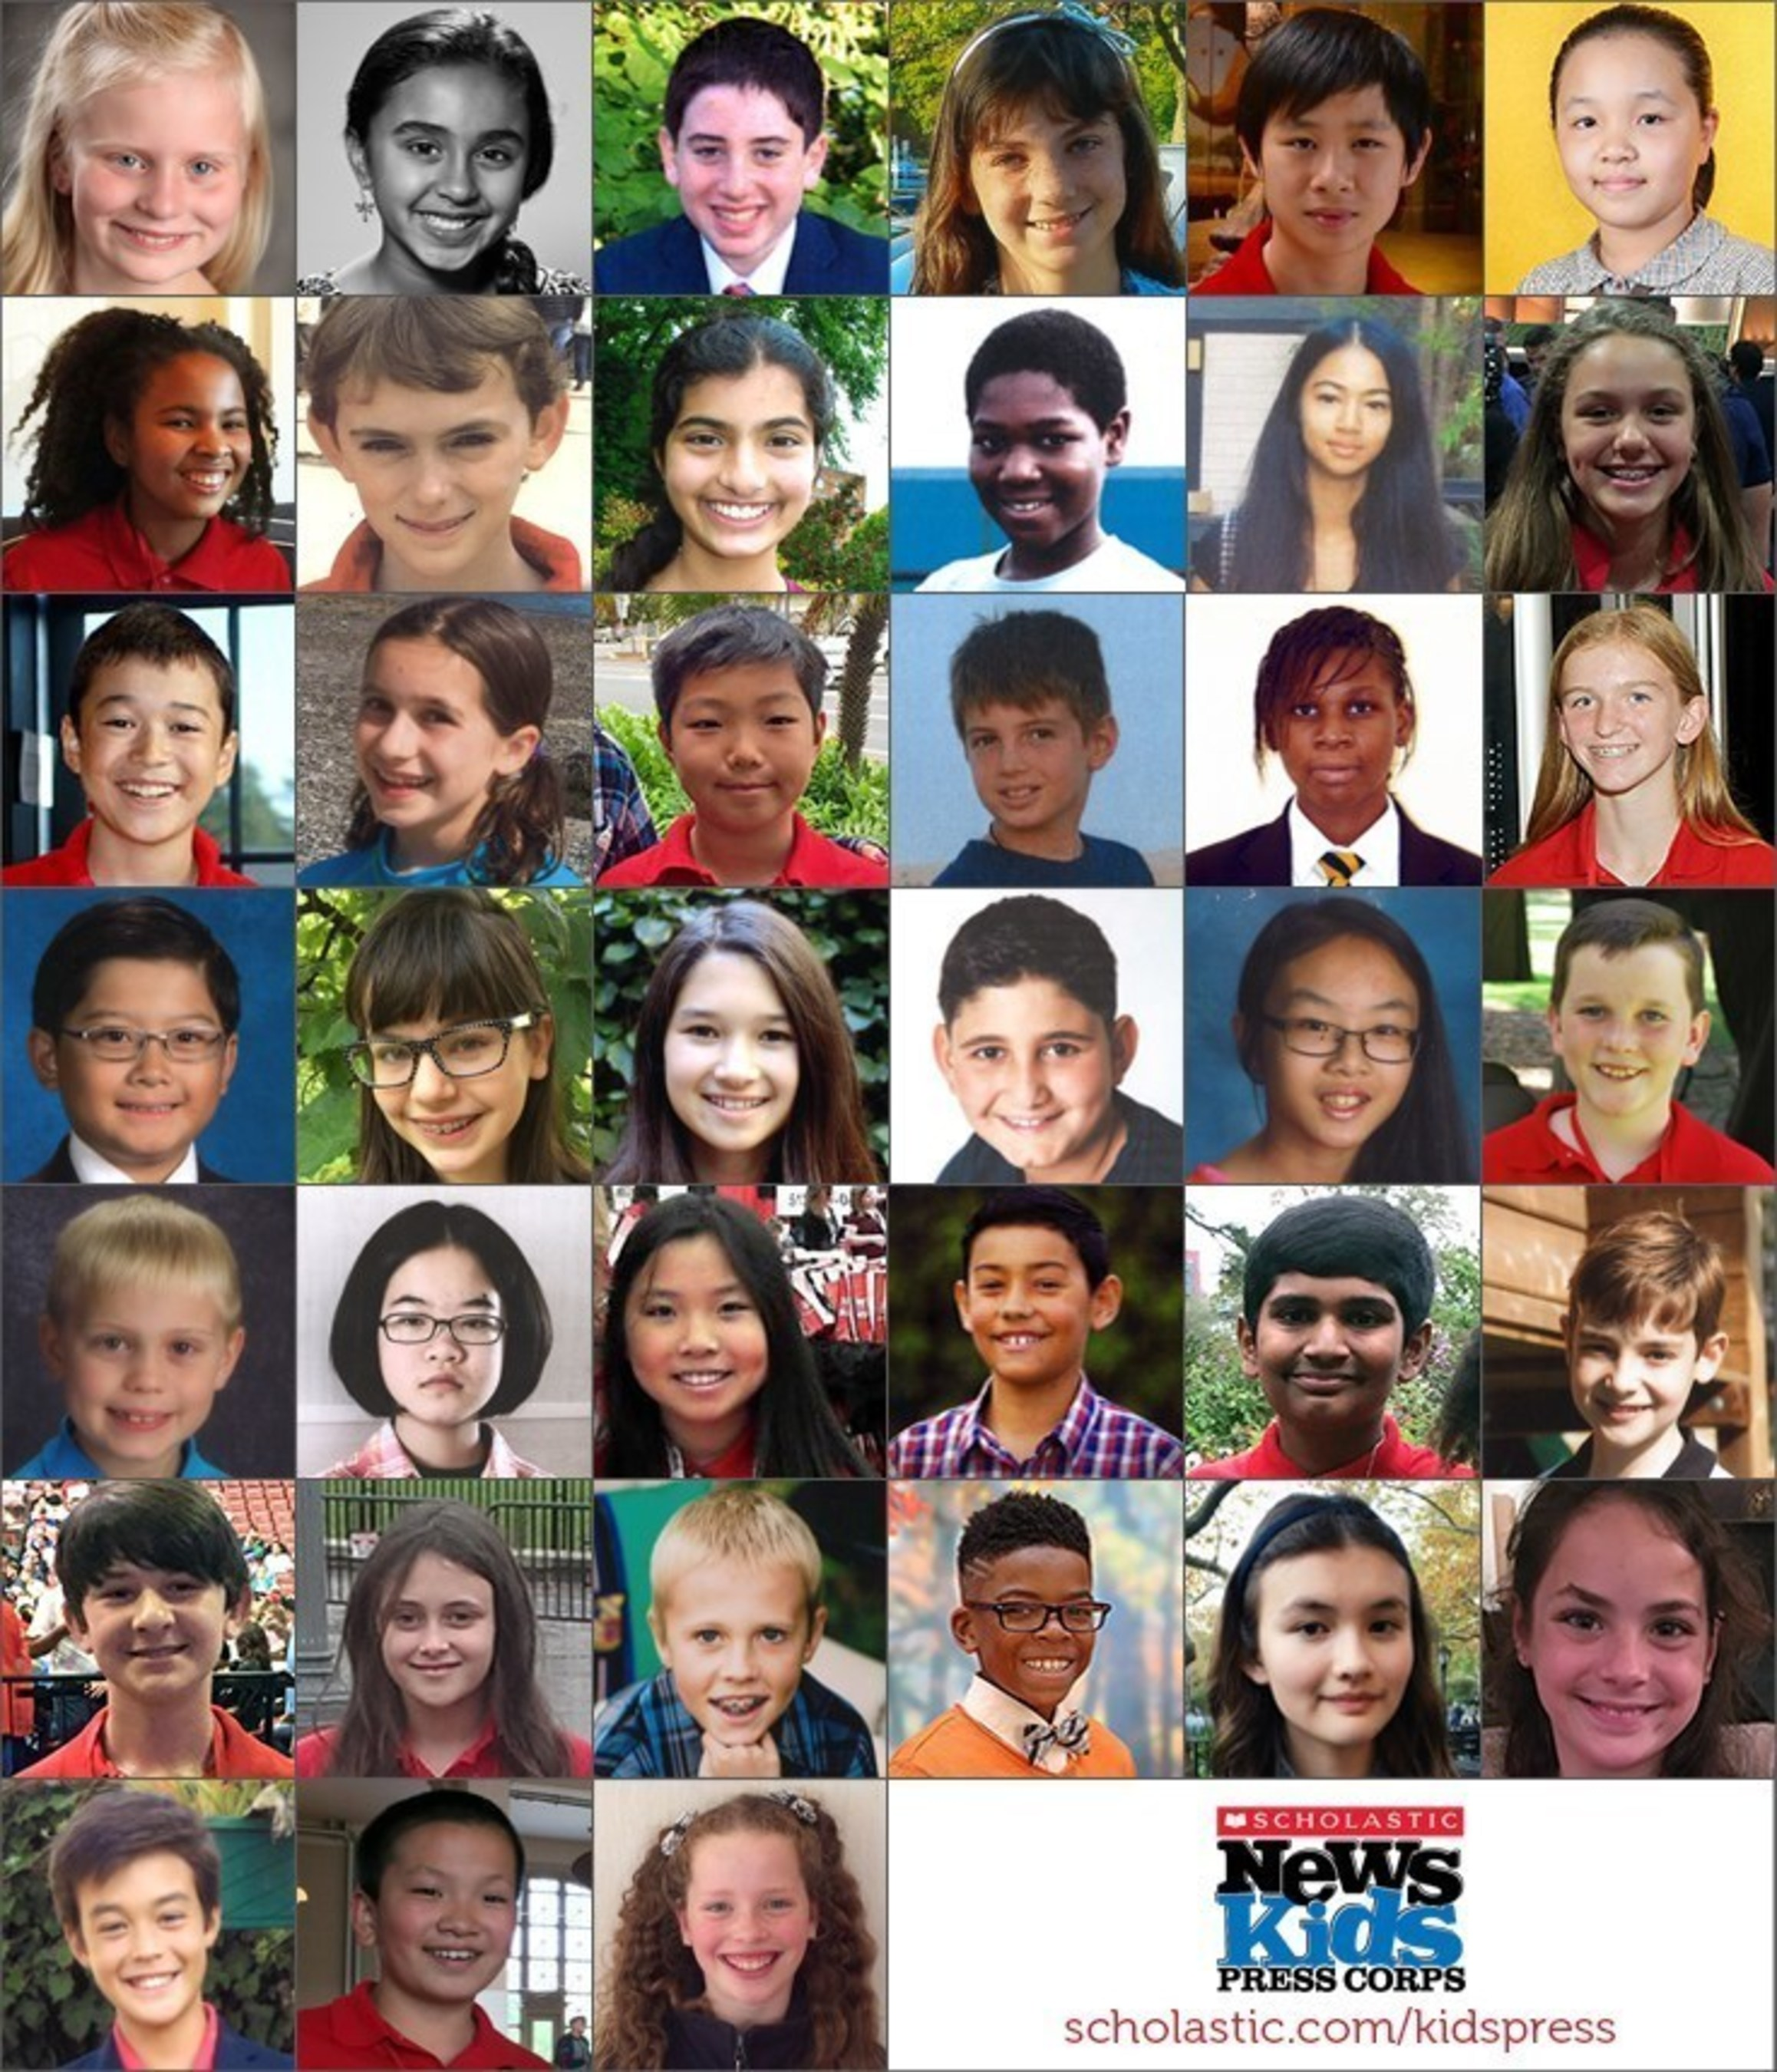 The new and returning Kid Reporters in the 2016-2017 Scholastic News Kids Press Corps.